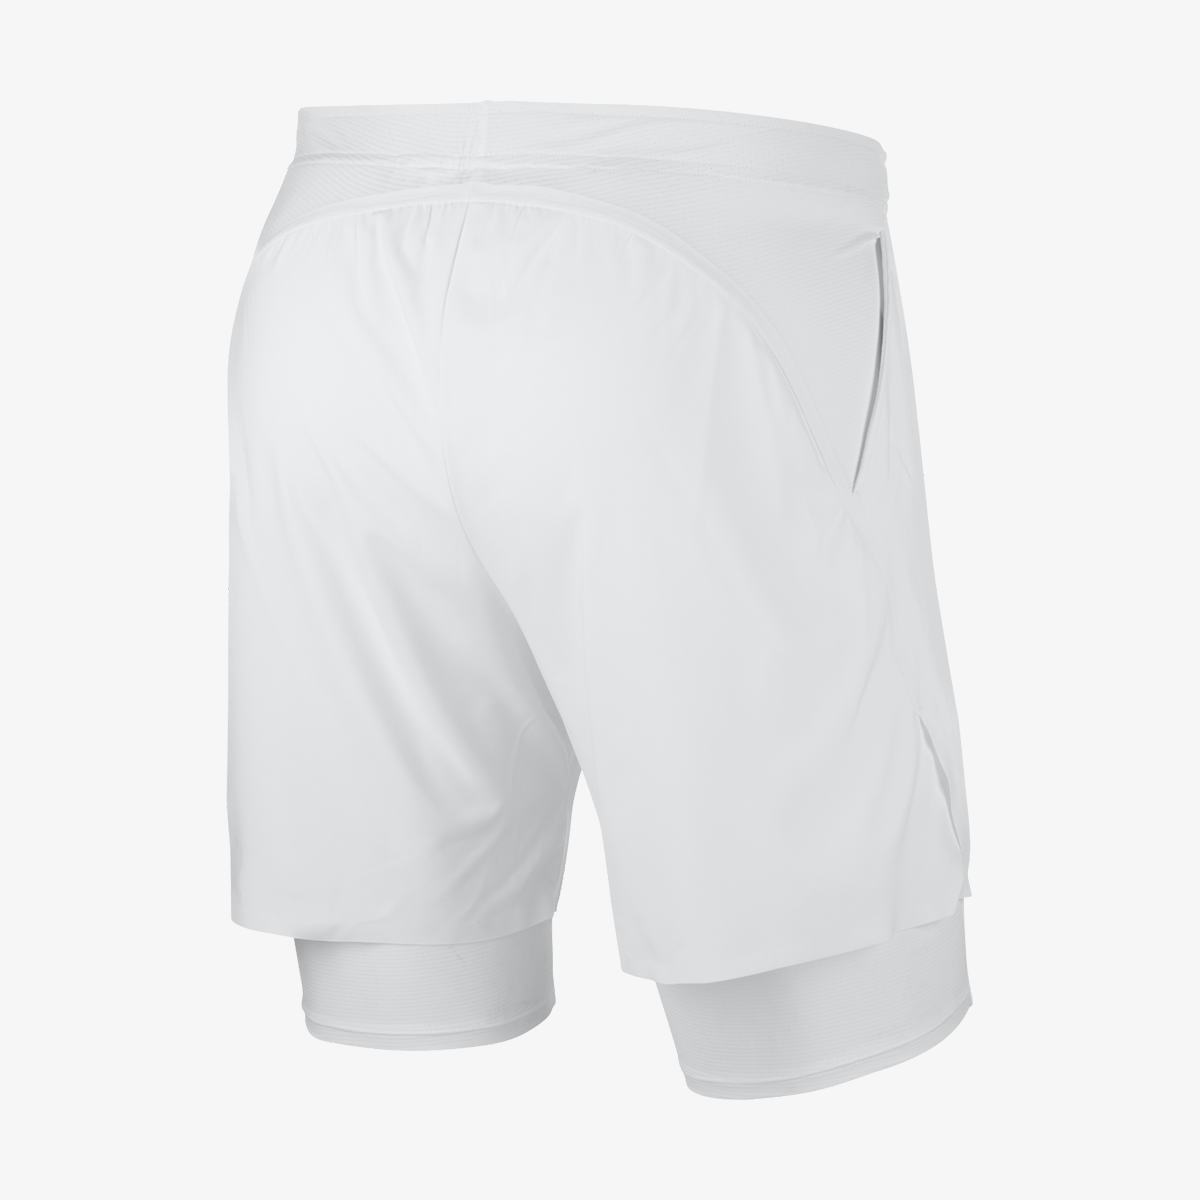 Шорты Nike M NKCT FLX ACE PRO SHORT 7IN